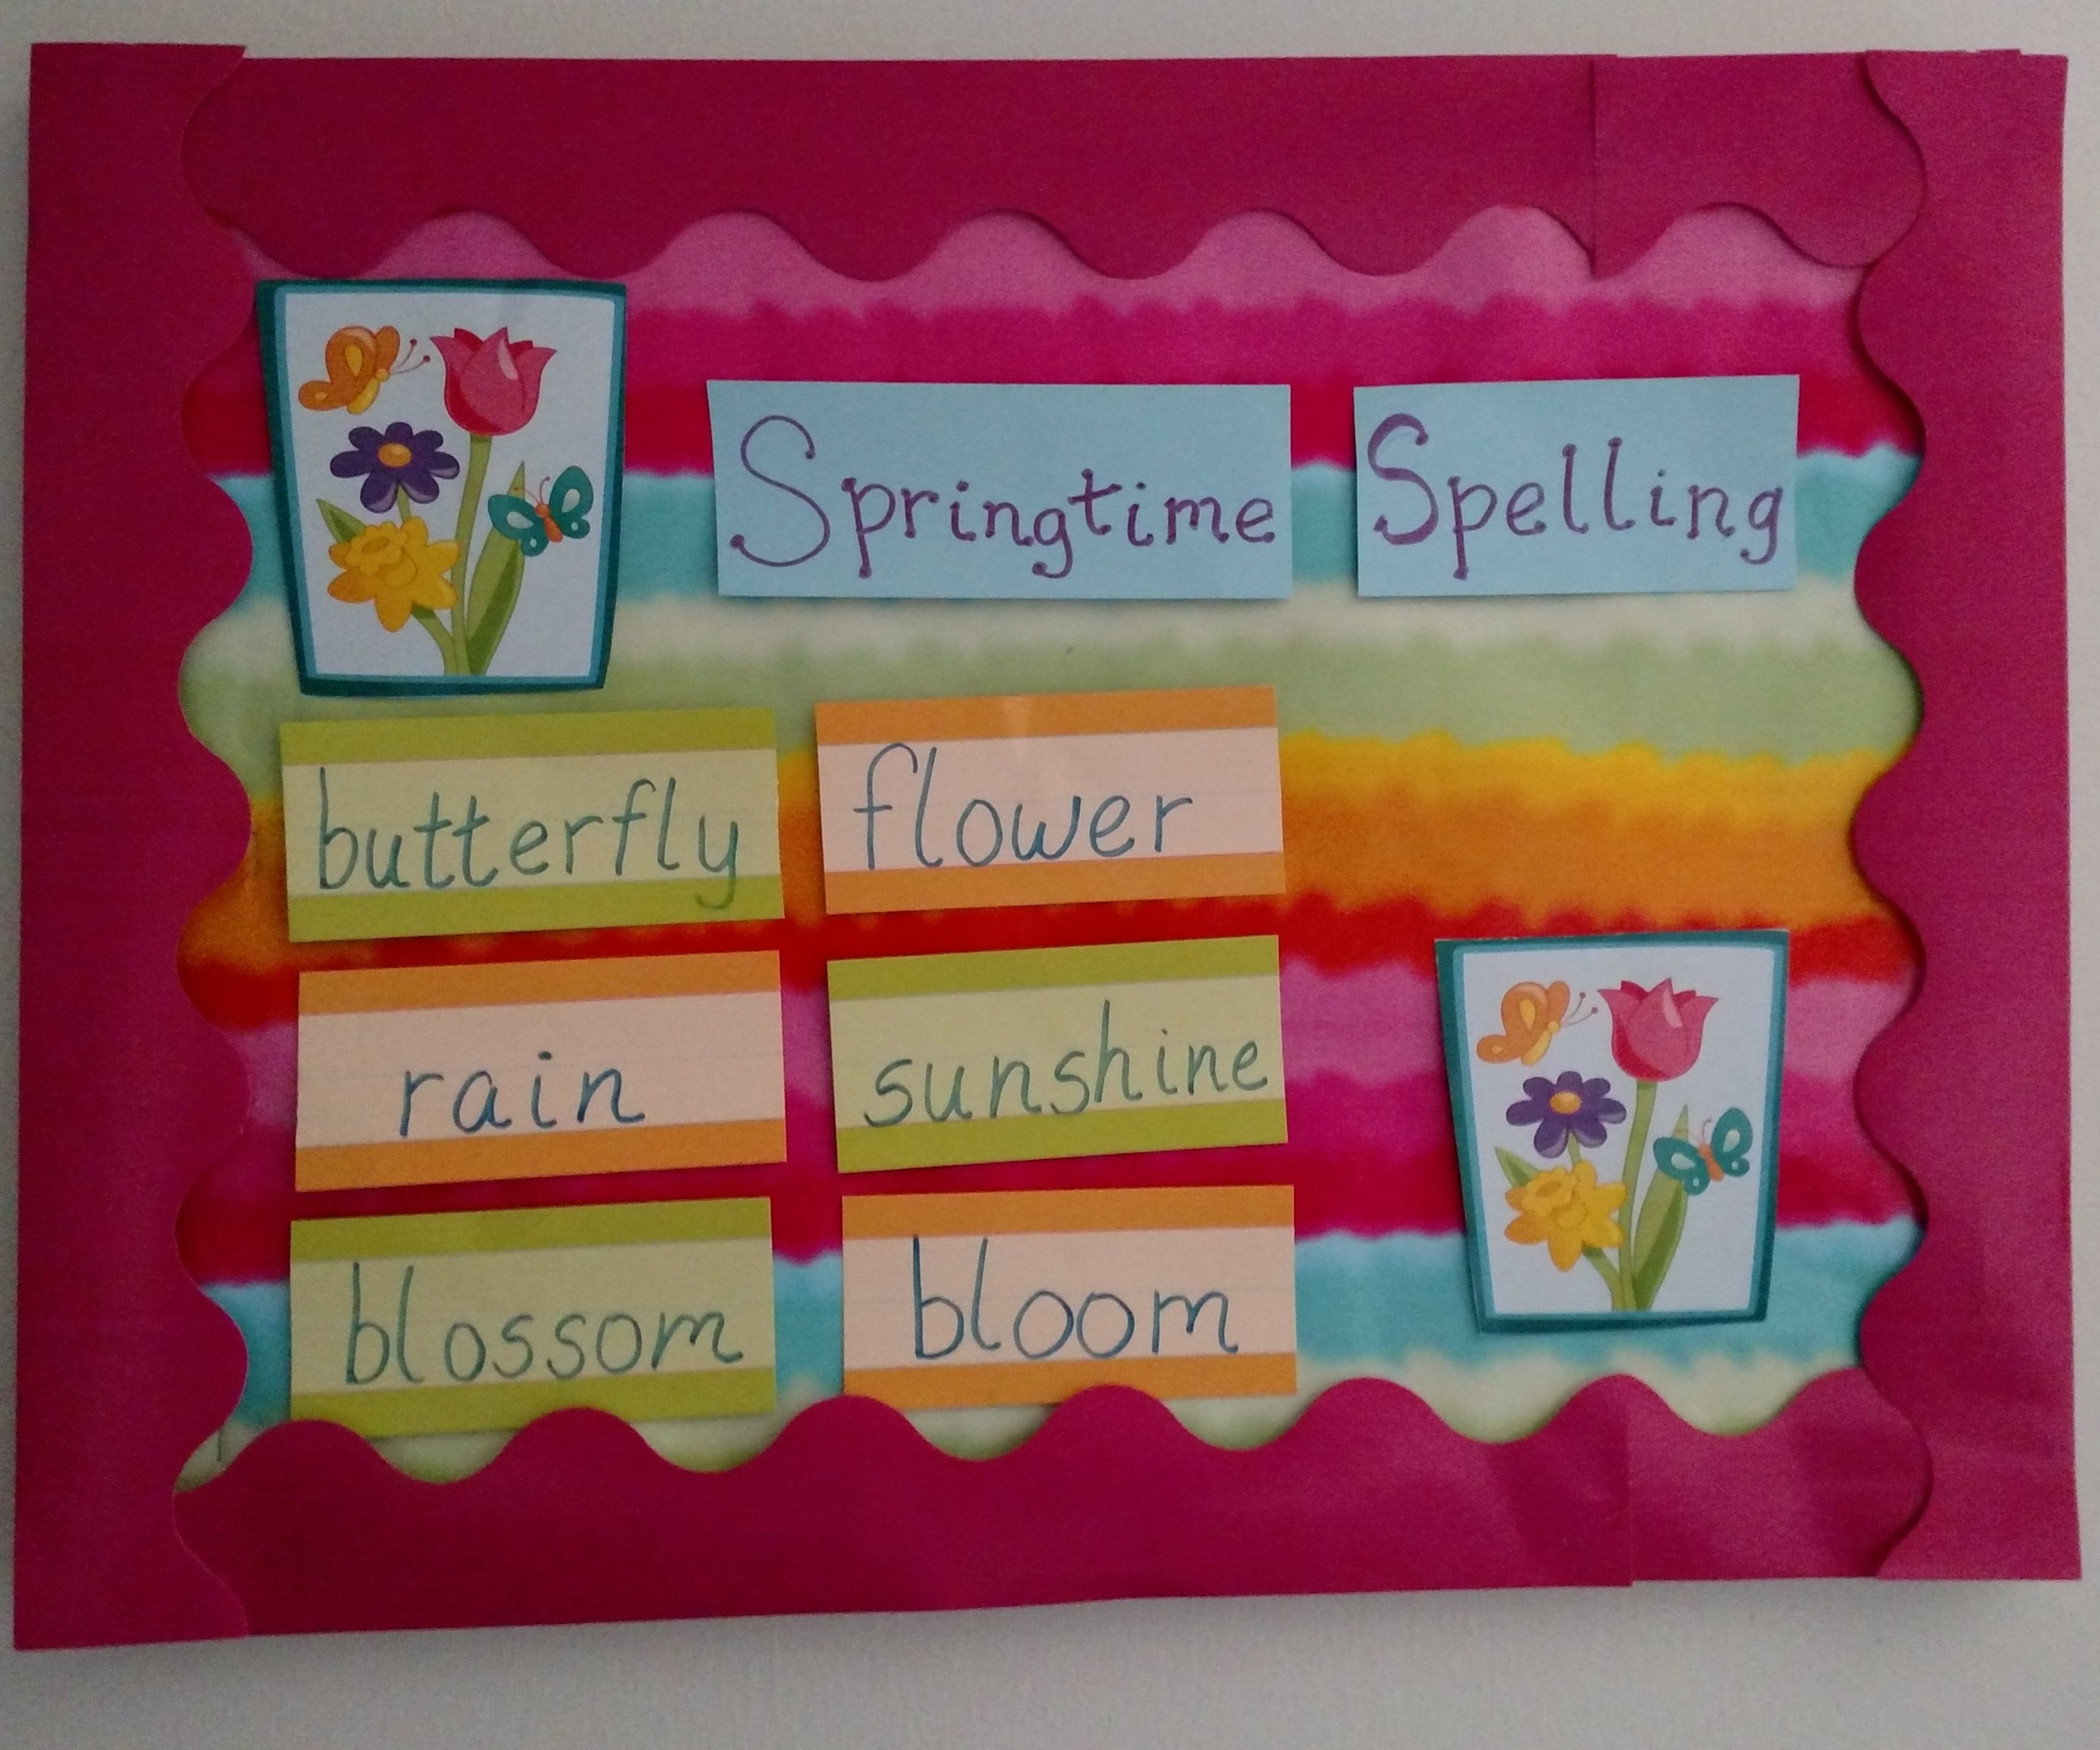 Creating A Classroom Bulletin Board 9 Steps With Pictures Instructables